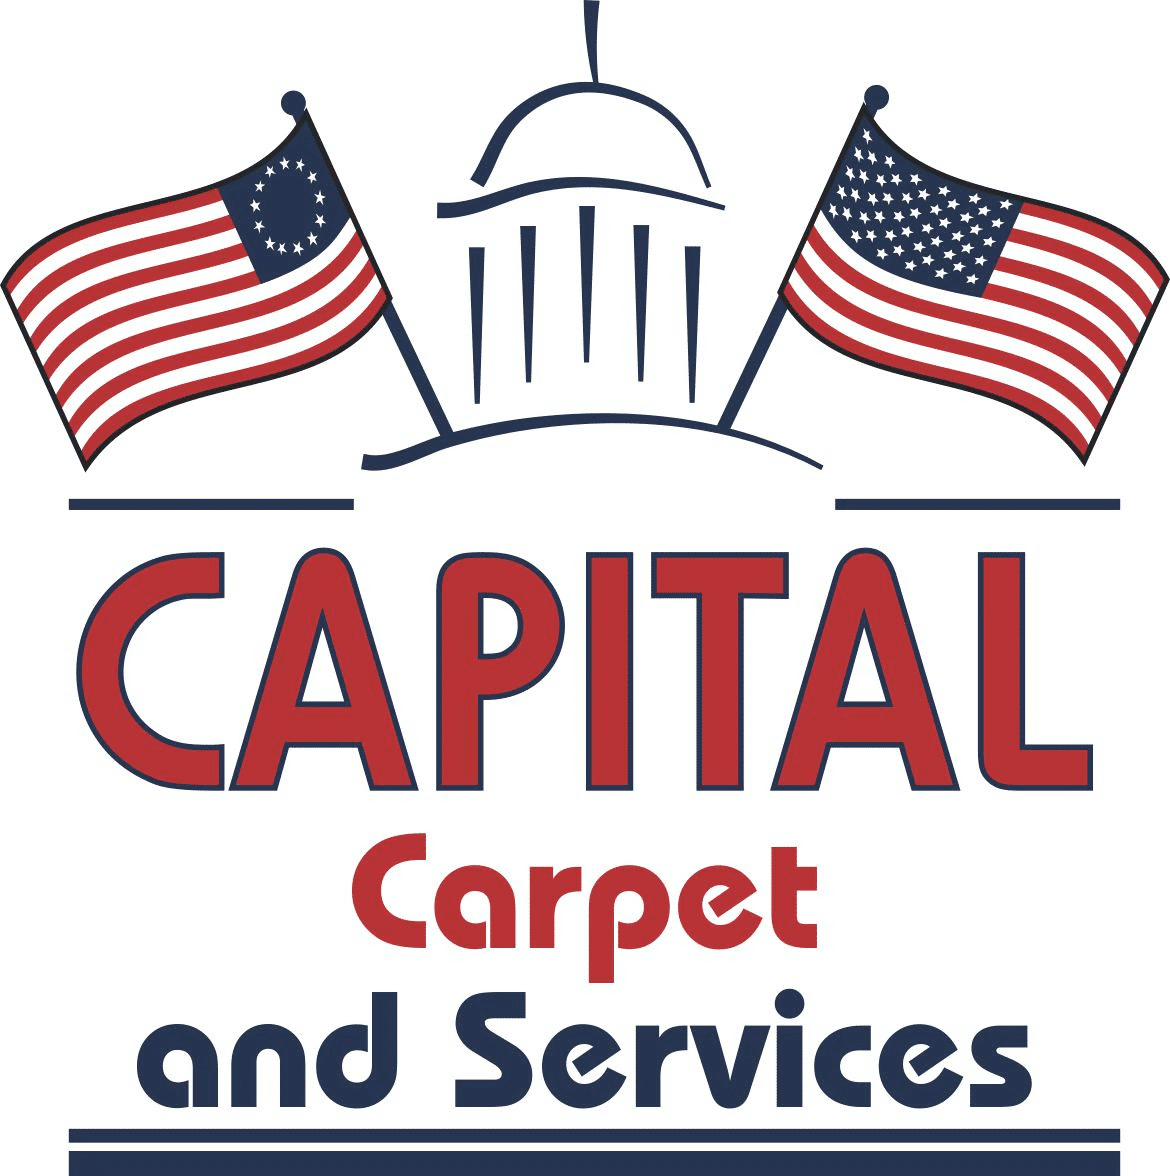 capital carpet and services, carpet cleaning services in hampton, newport news, williamburg, yorktown, hampton roads area